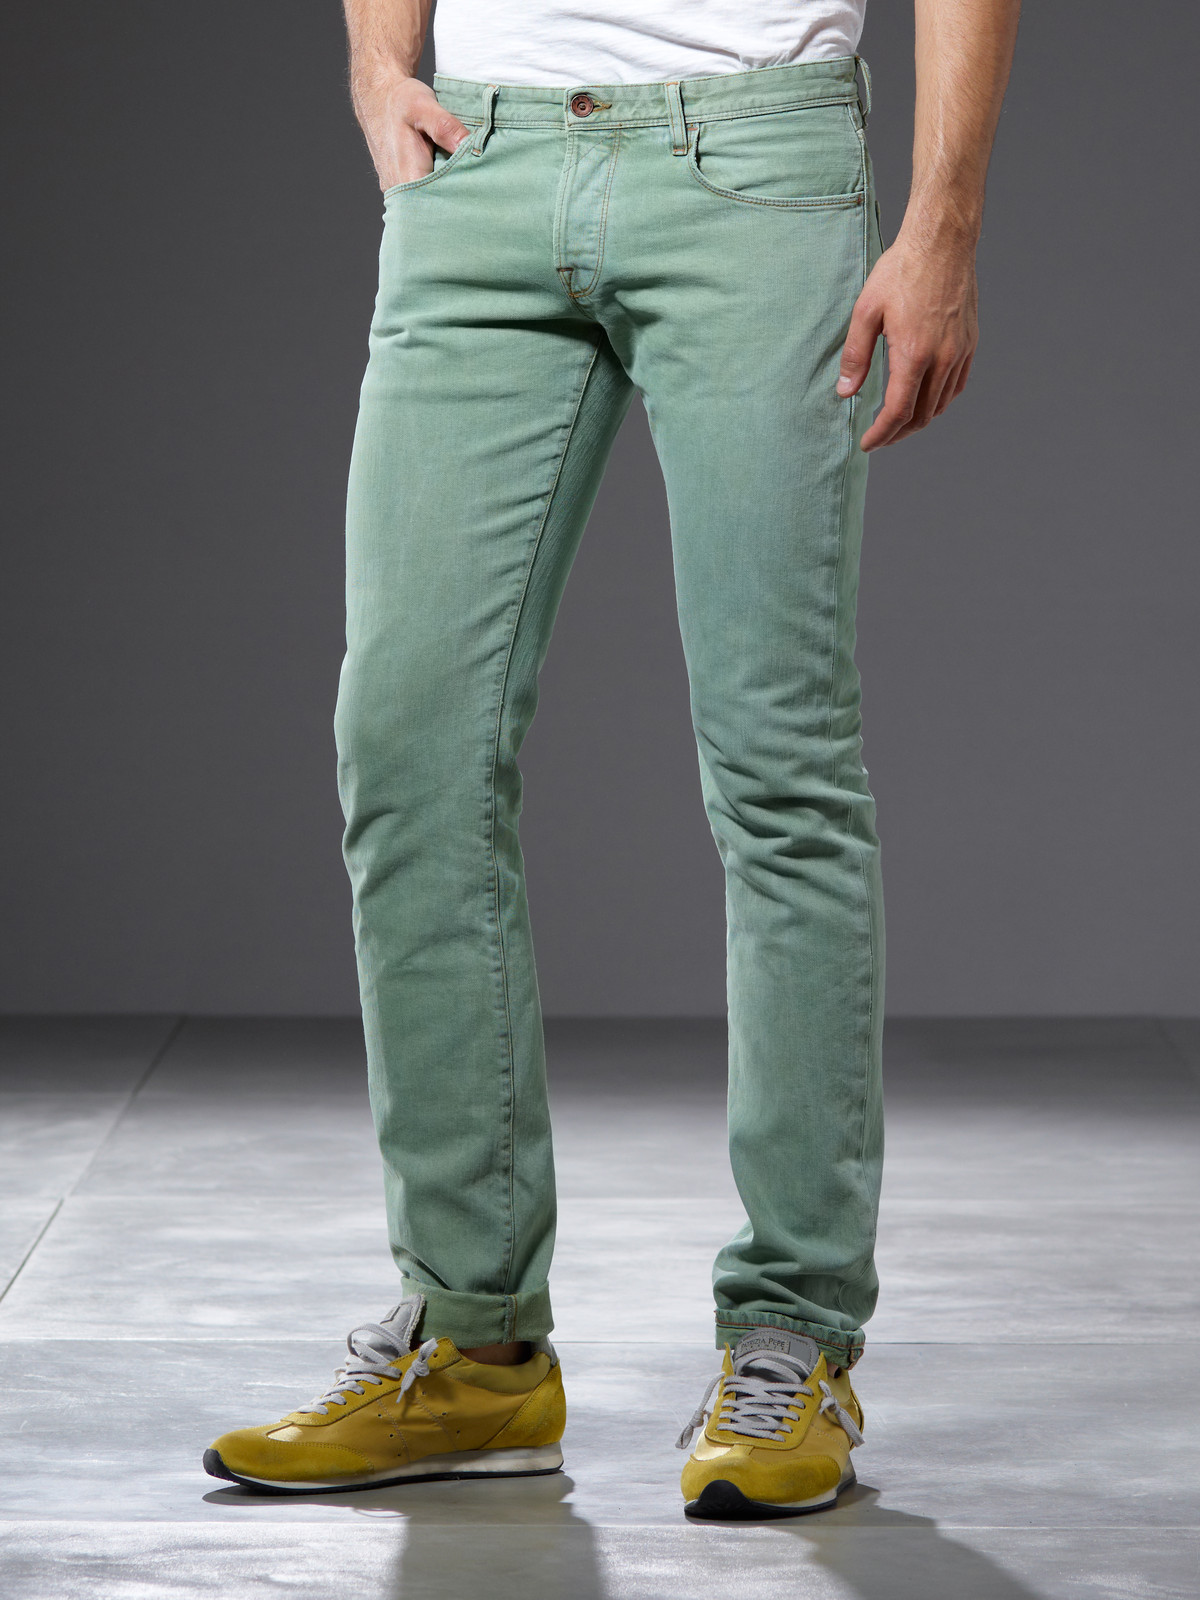 Mens Green Denim Jeans - Xtellar Jeans